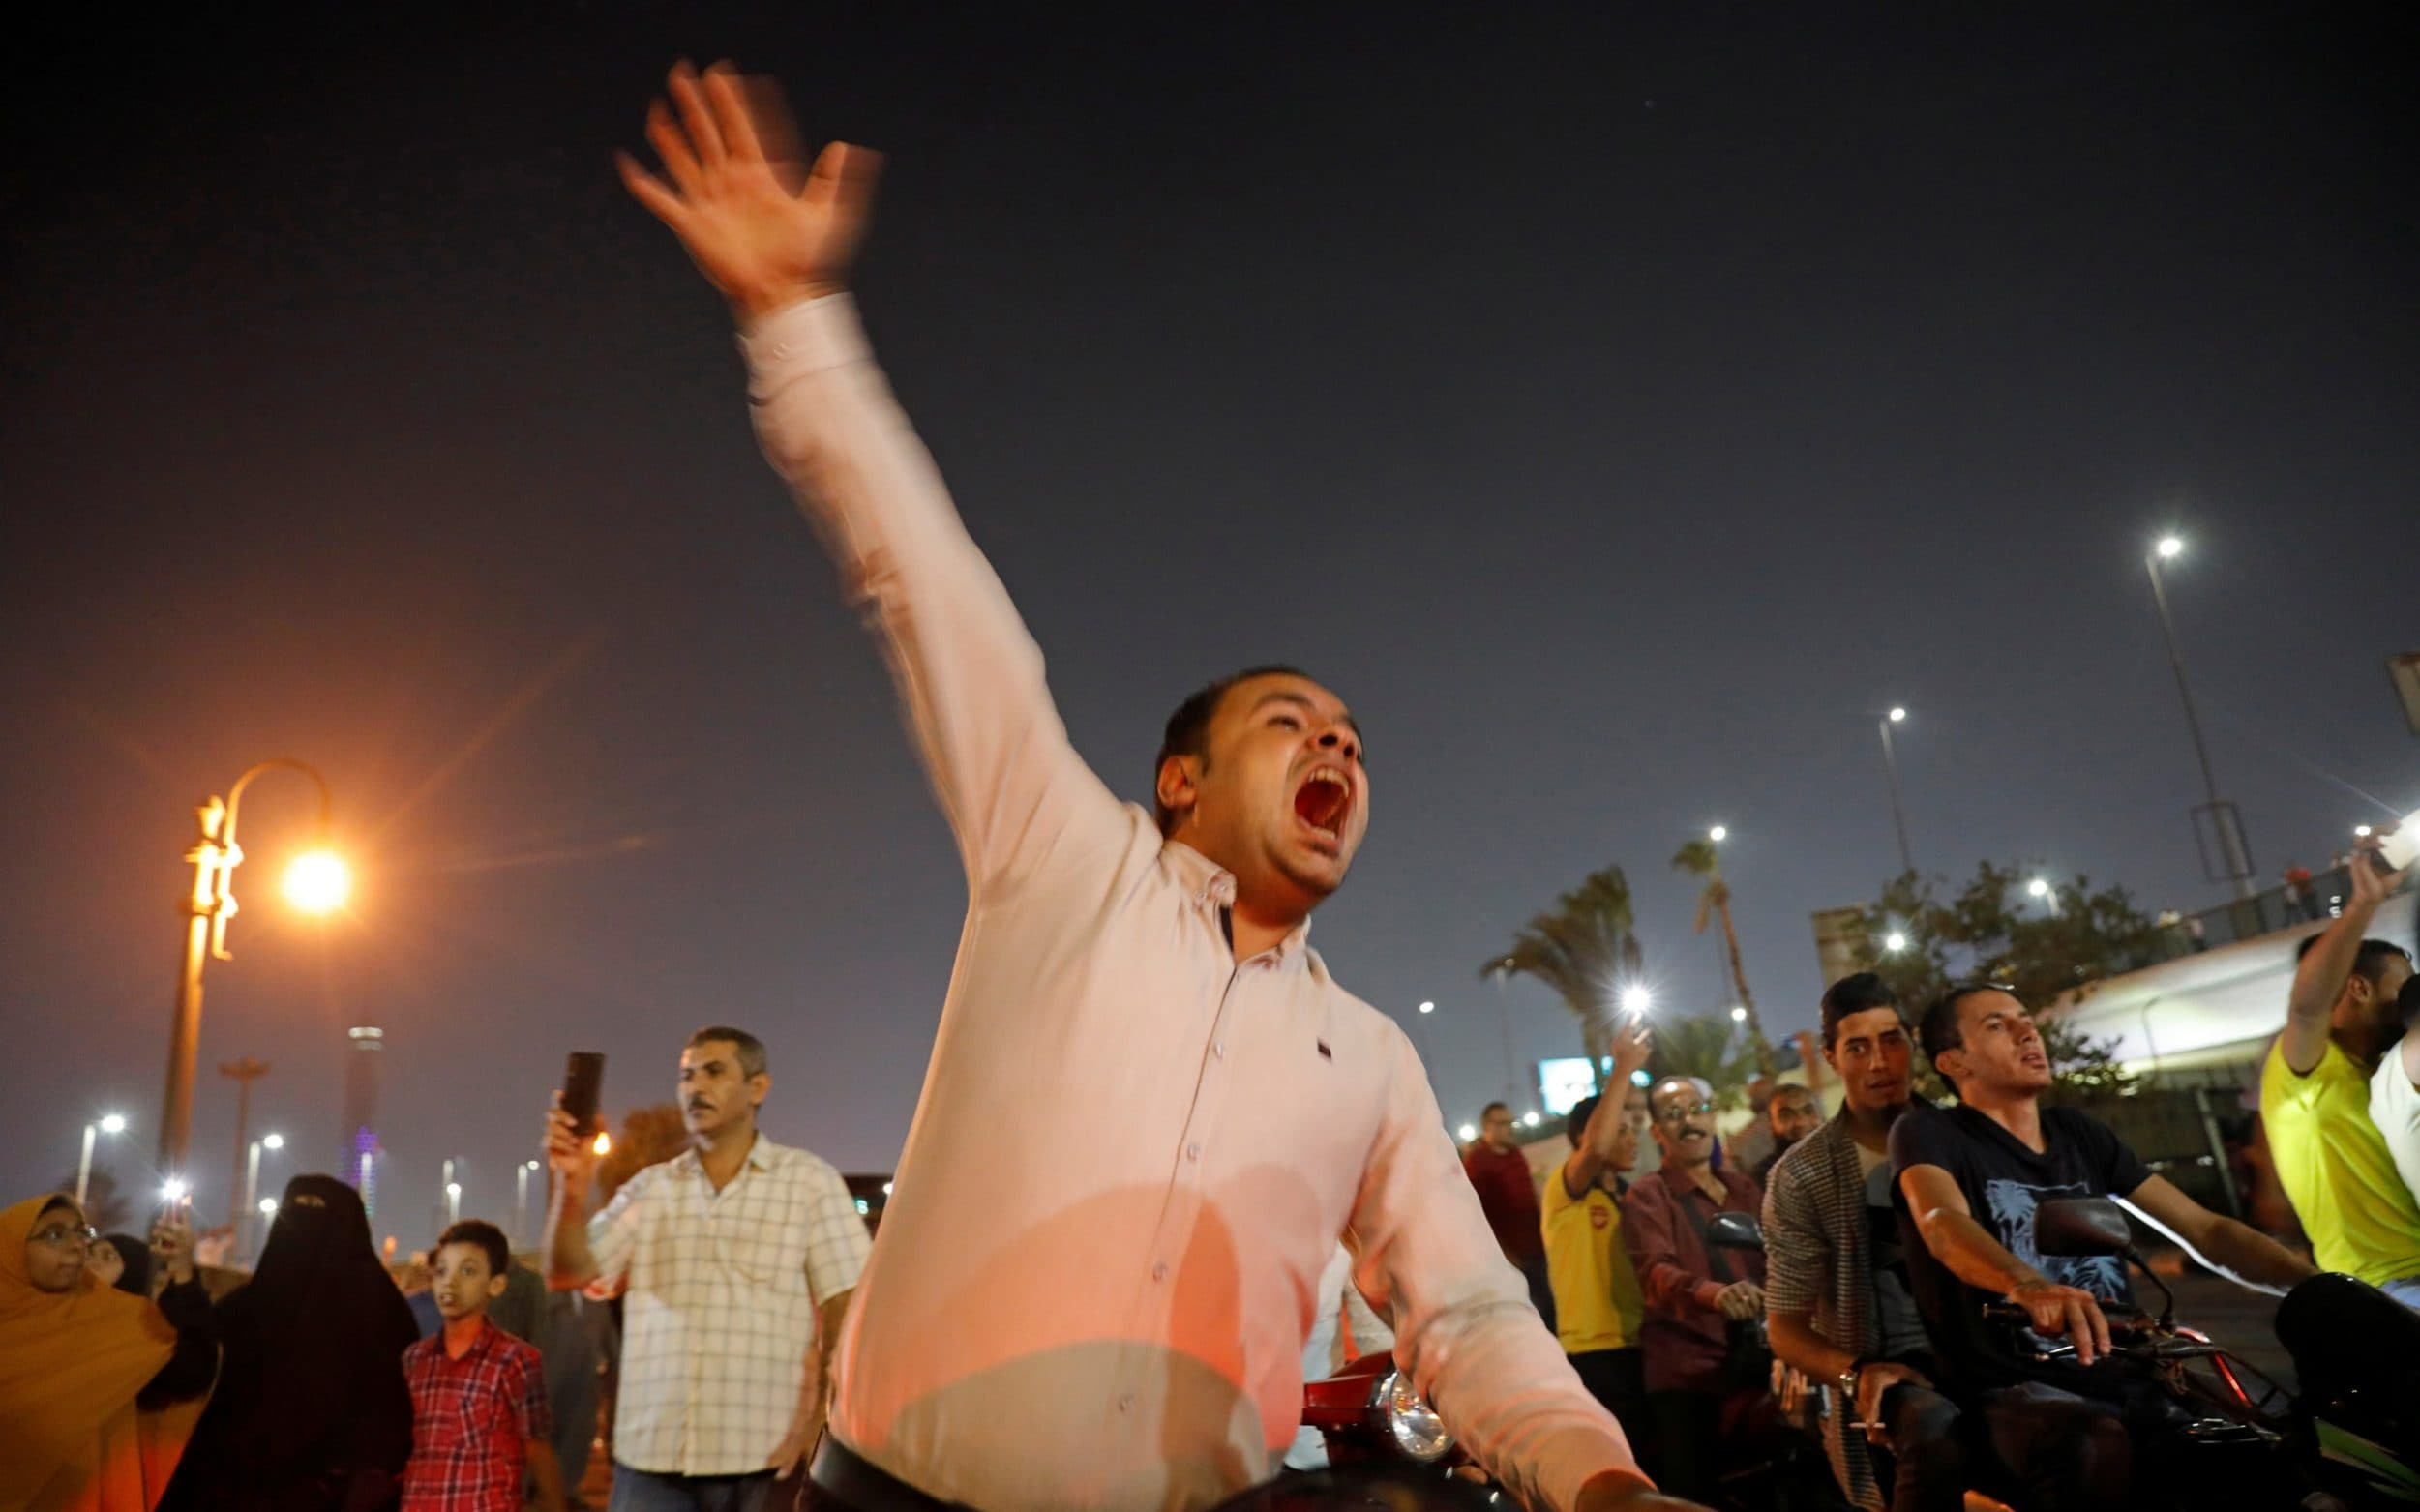 Egypts hardline president el-Sissi faces calls to quit in rare protests